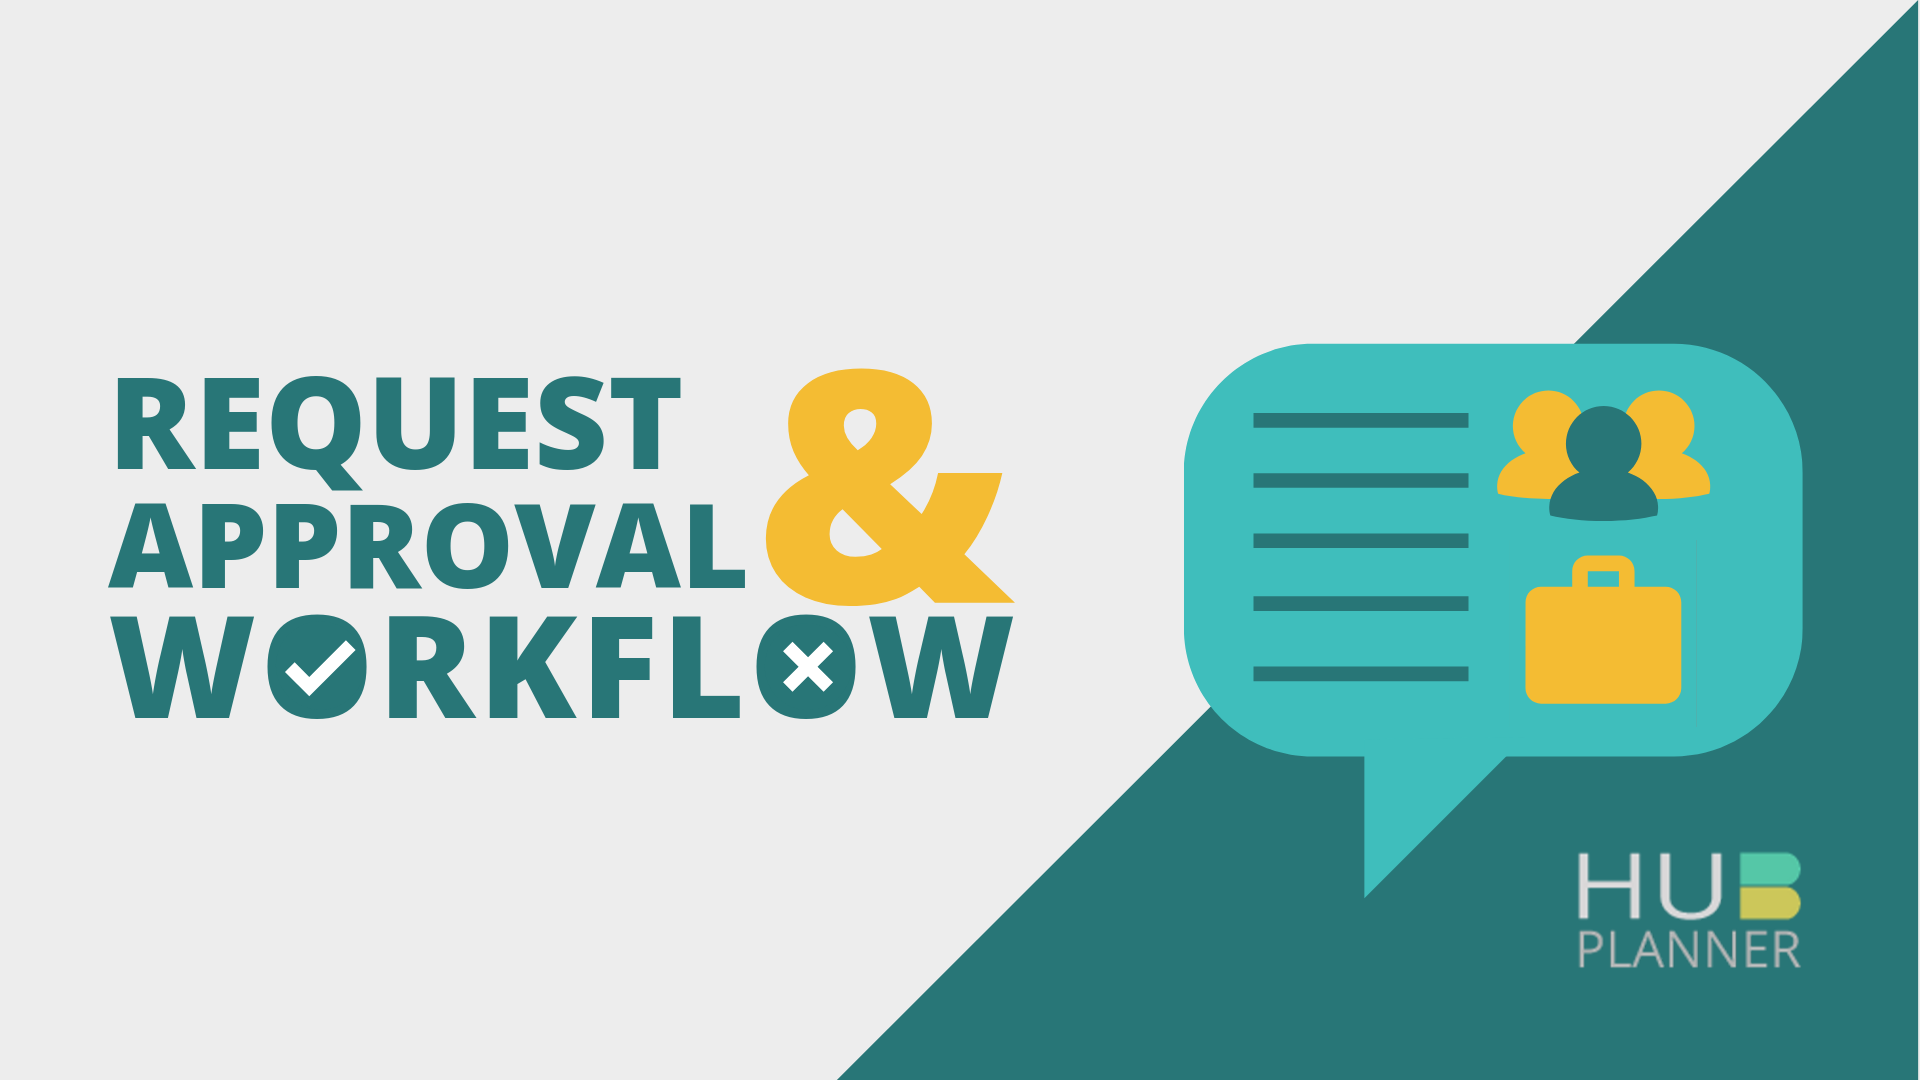 Approval_Request_Workflow